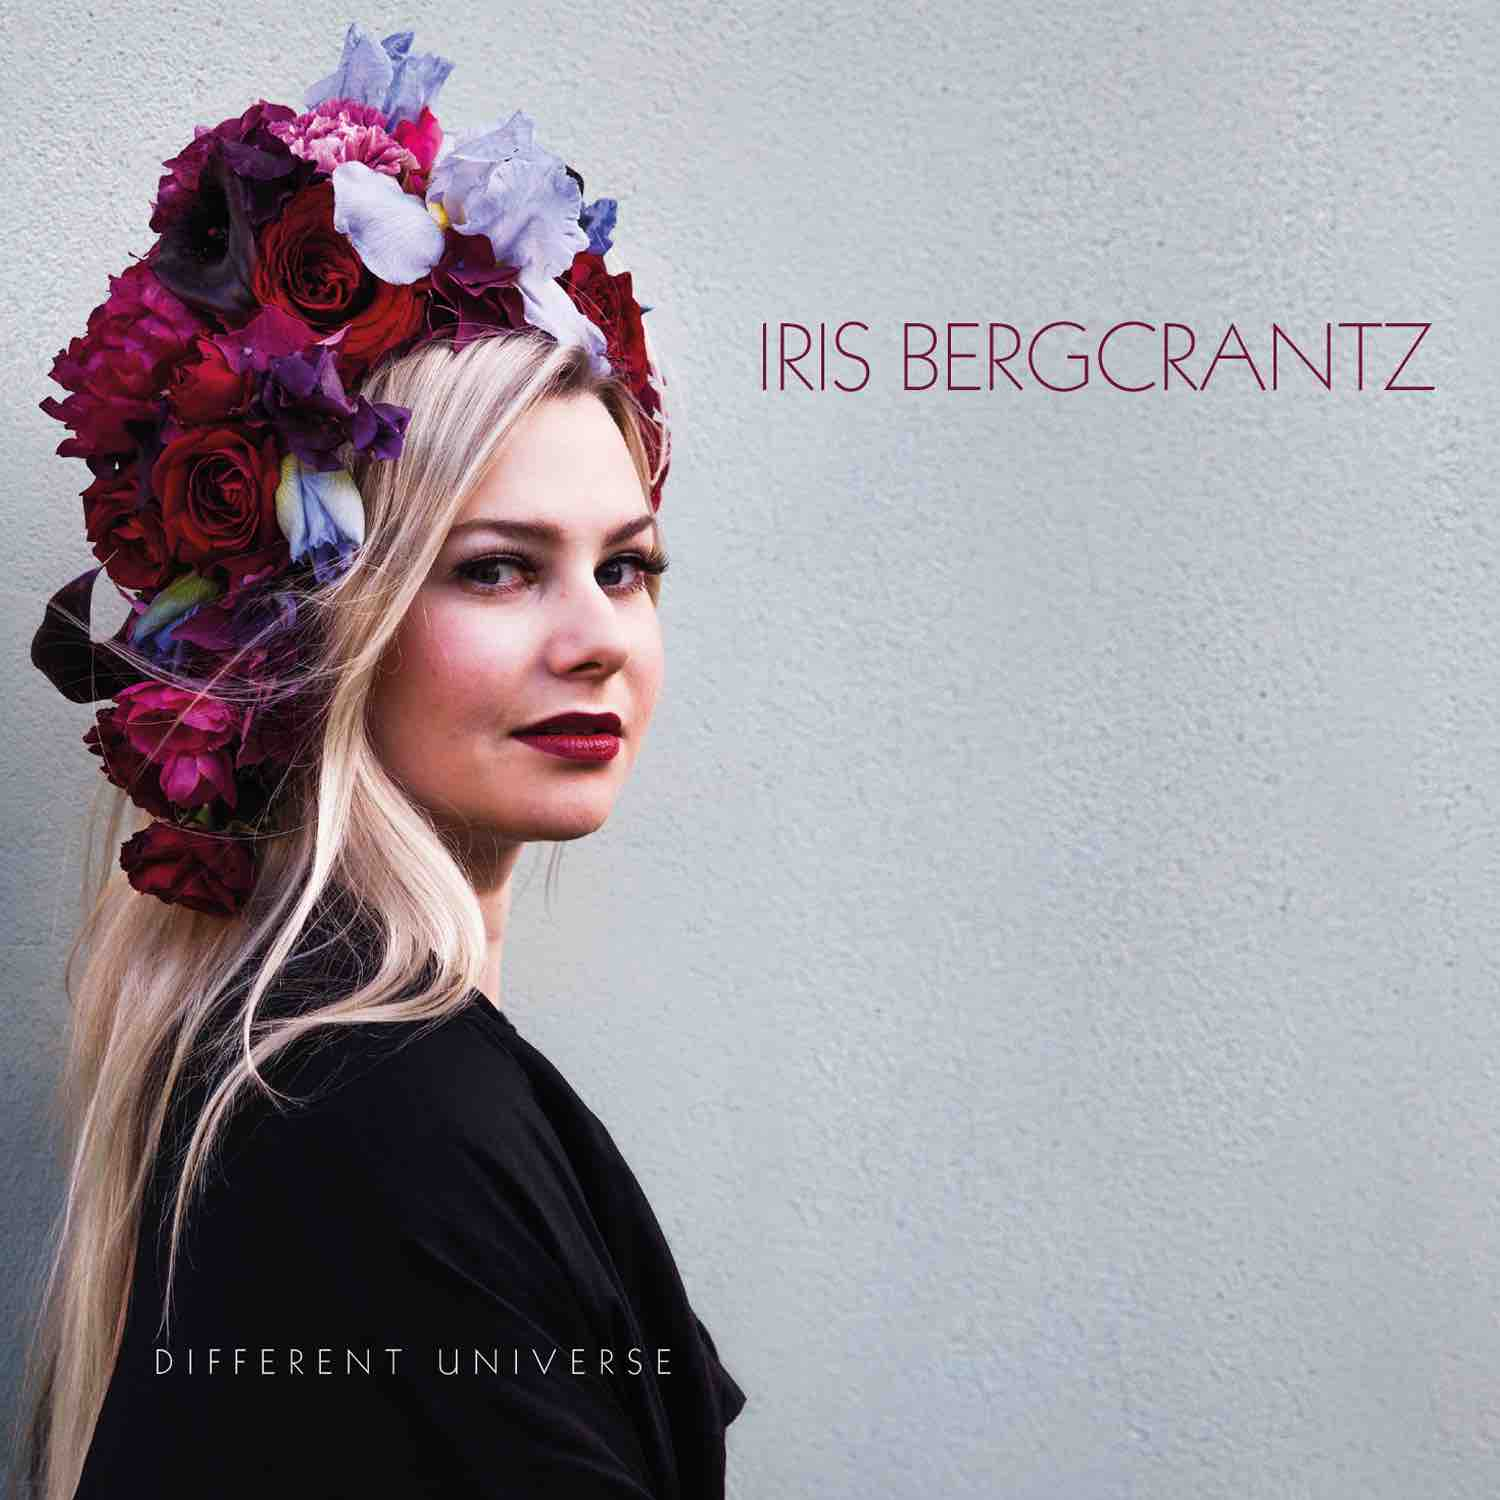 Iris Bergcrantz Album Cover, Low resolution